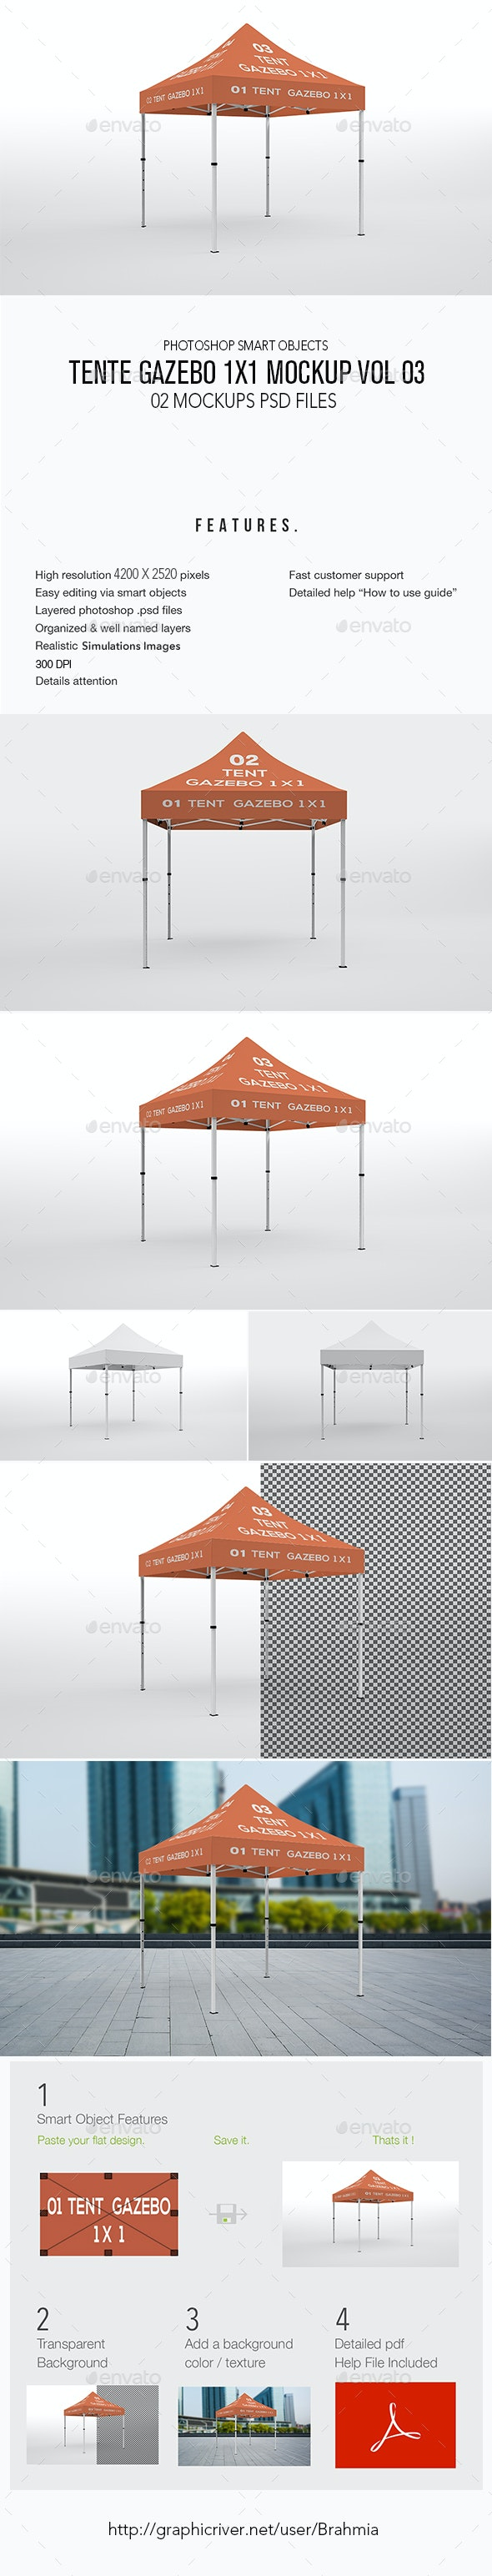 Tente Gazebo 1x1 Mockup Vol 03 - Miscellaneous Print